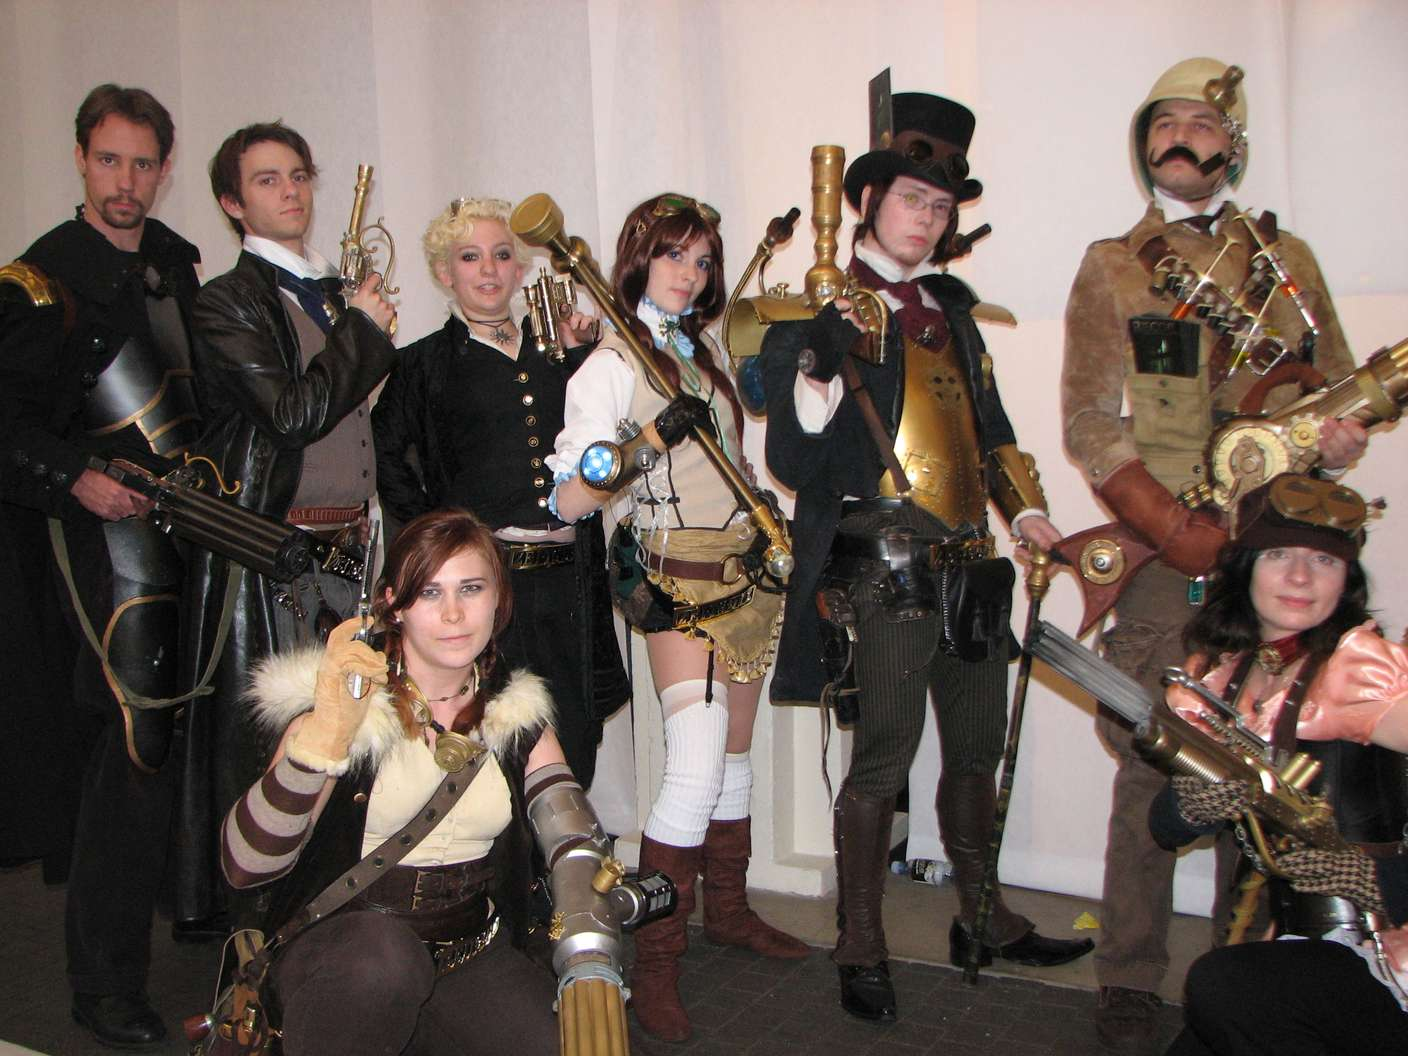 Group-of-Steampunk-People5.jpg